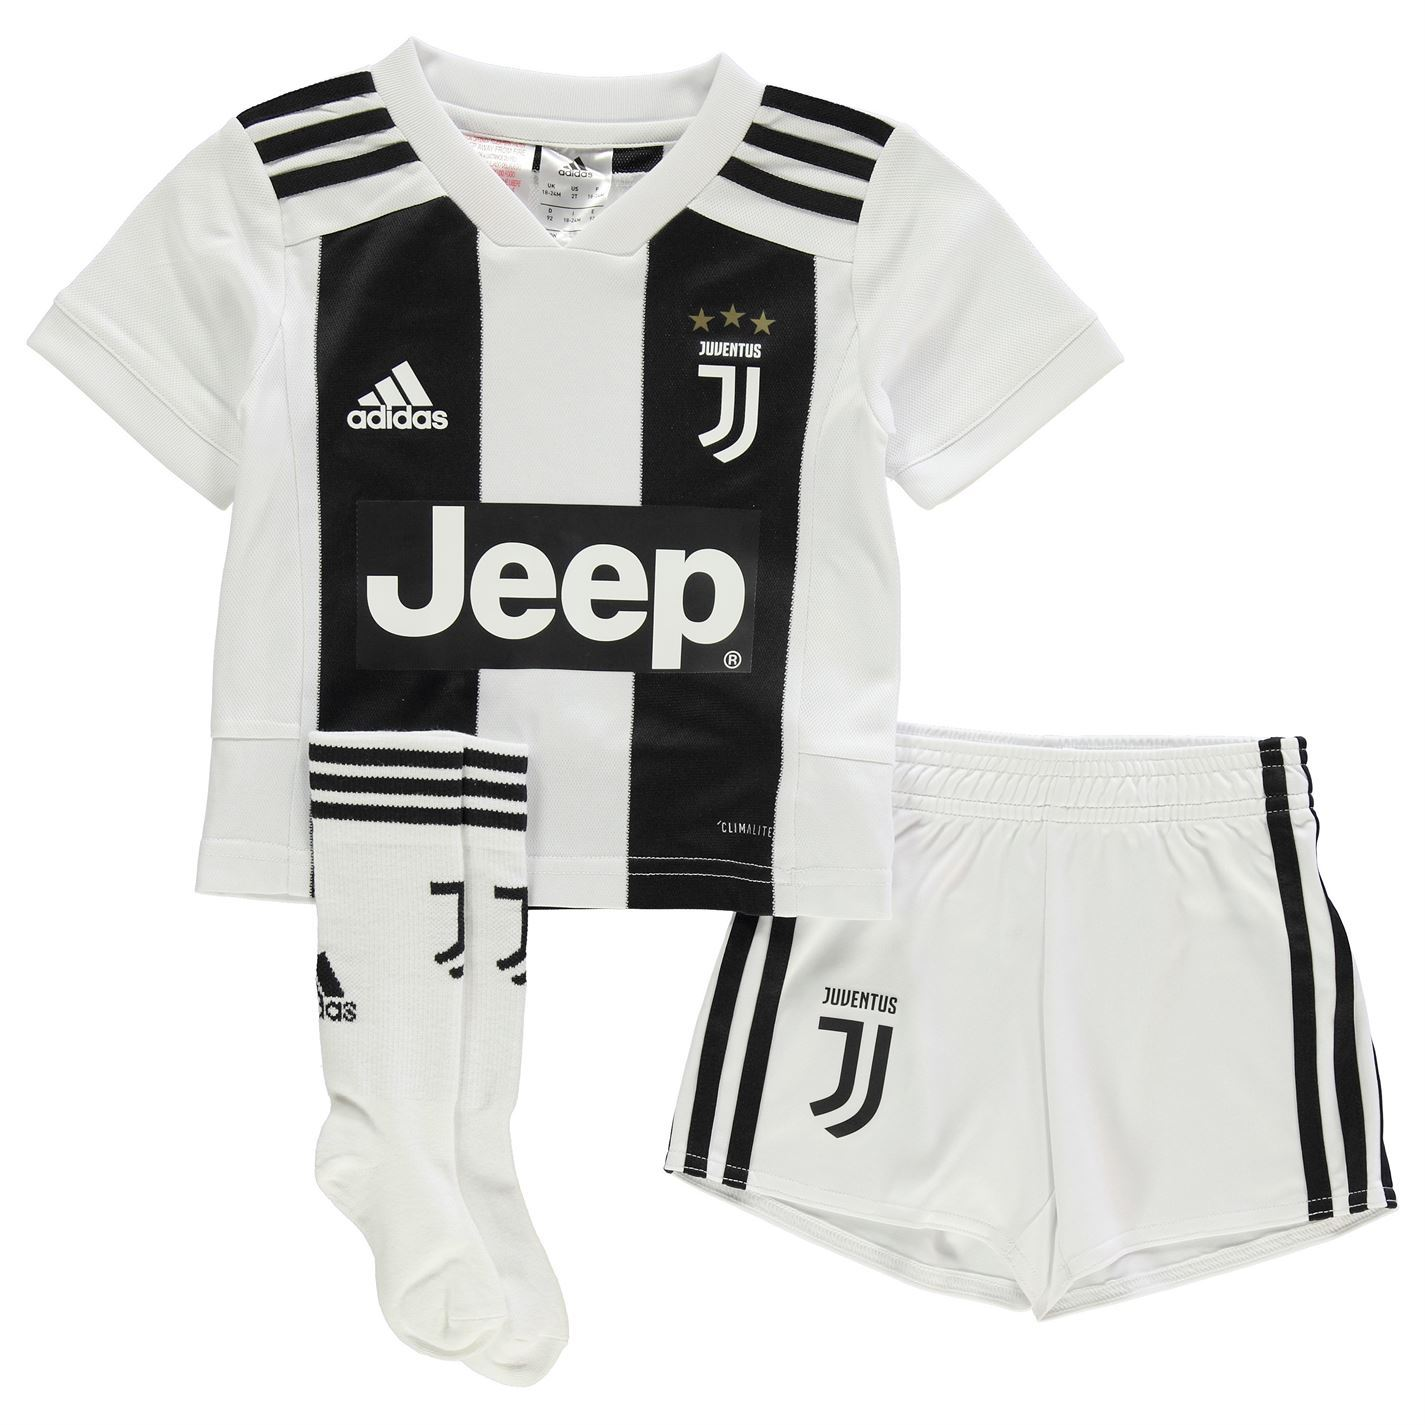 39749f4bd2a2 adidas Kids Boys Juventus Home Mini Kit 2018 2019 Domestic Minikits  ClimaLite